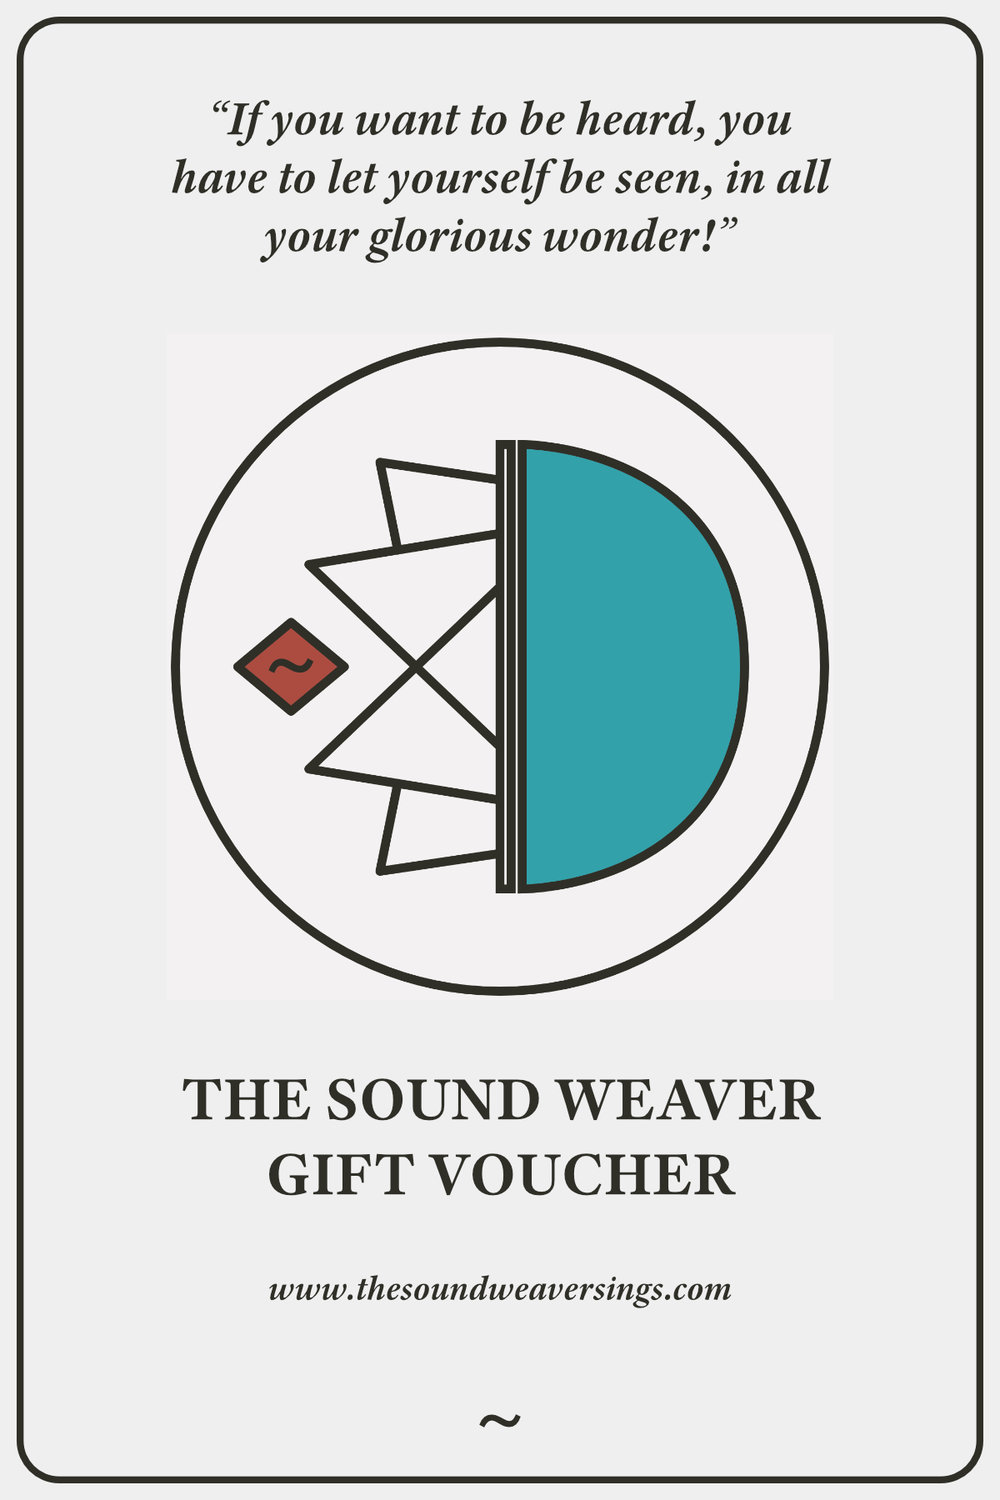 Buy Now - Guitar & Piano Gift Voucher